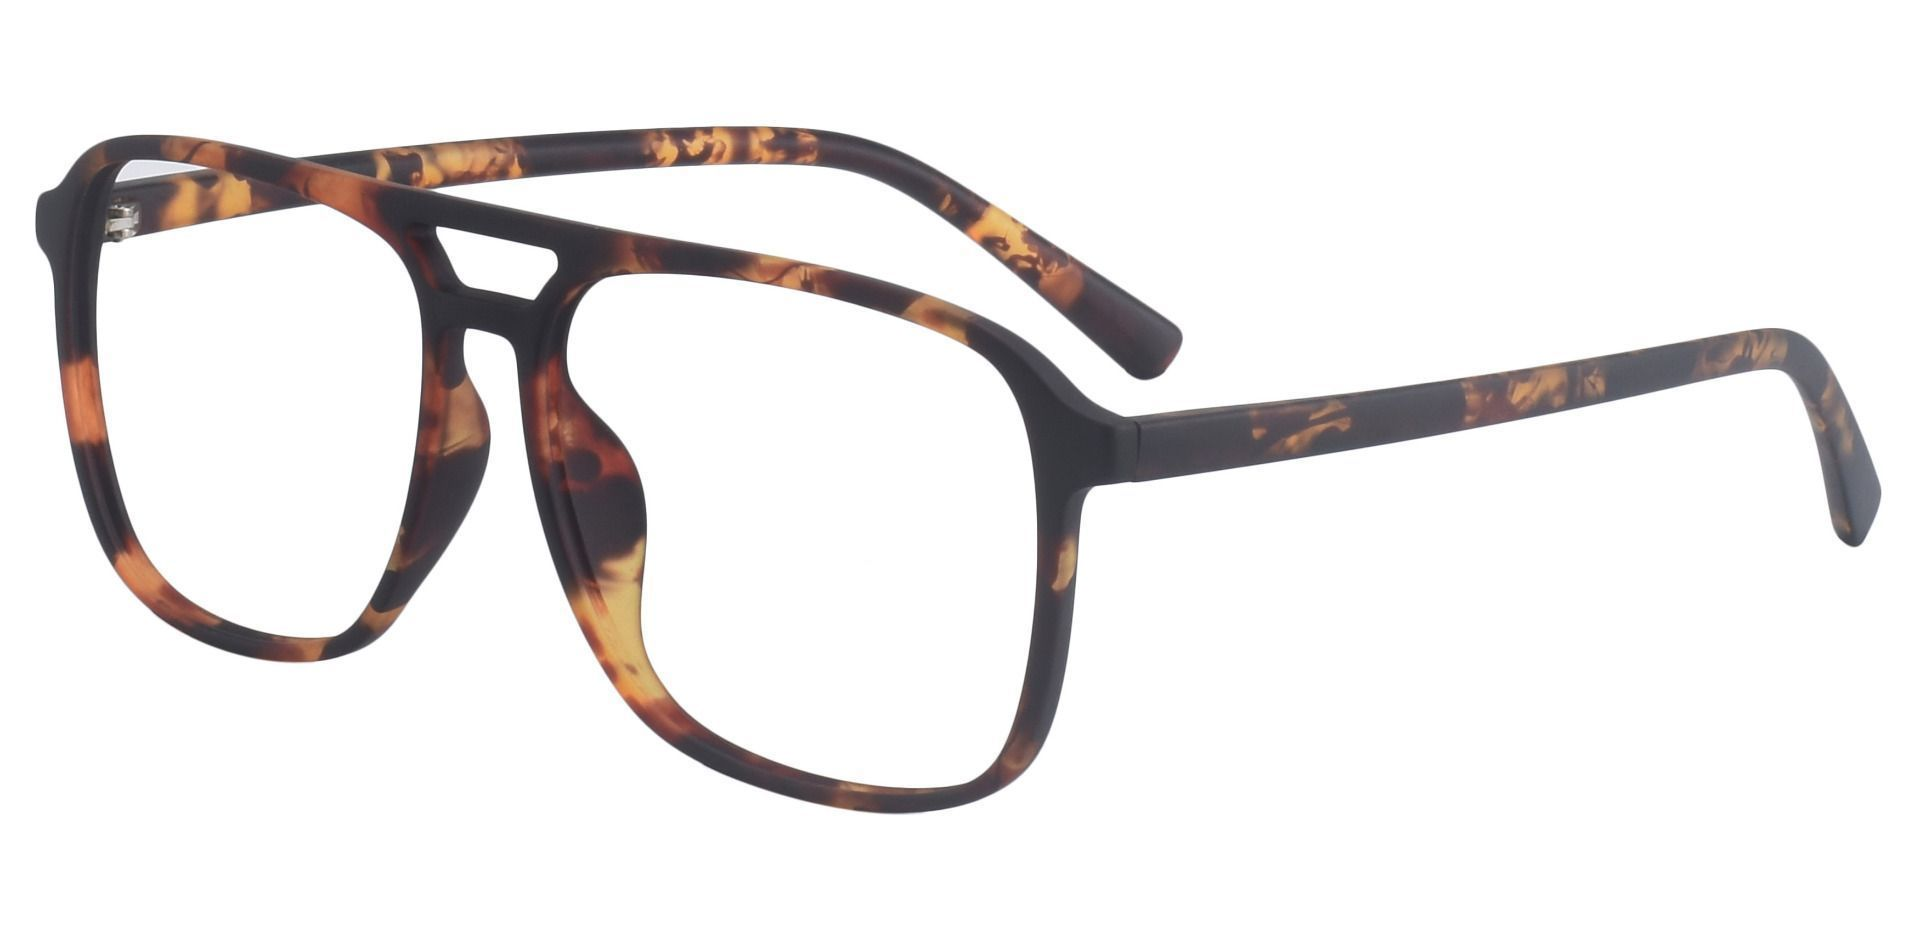 Edward Aviator Prescription Glasses - Tortoise